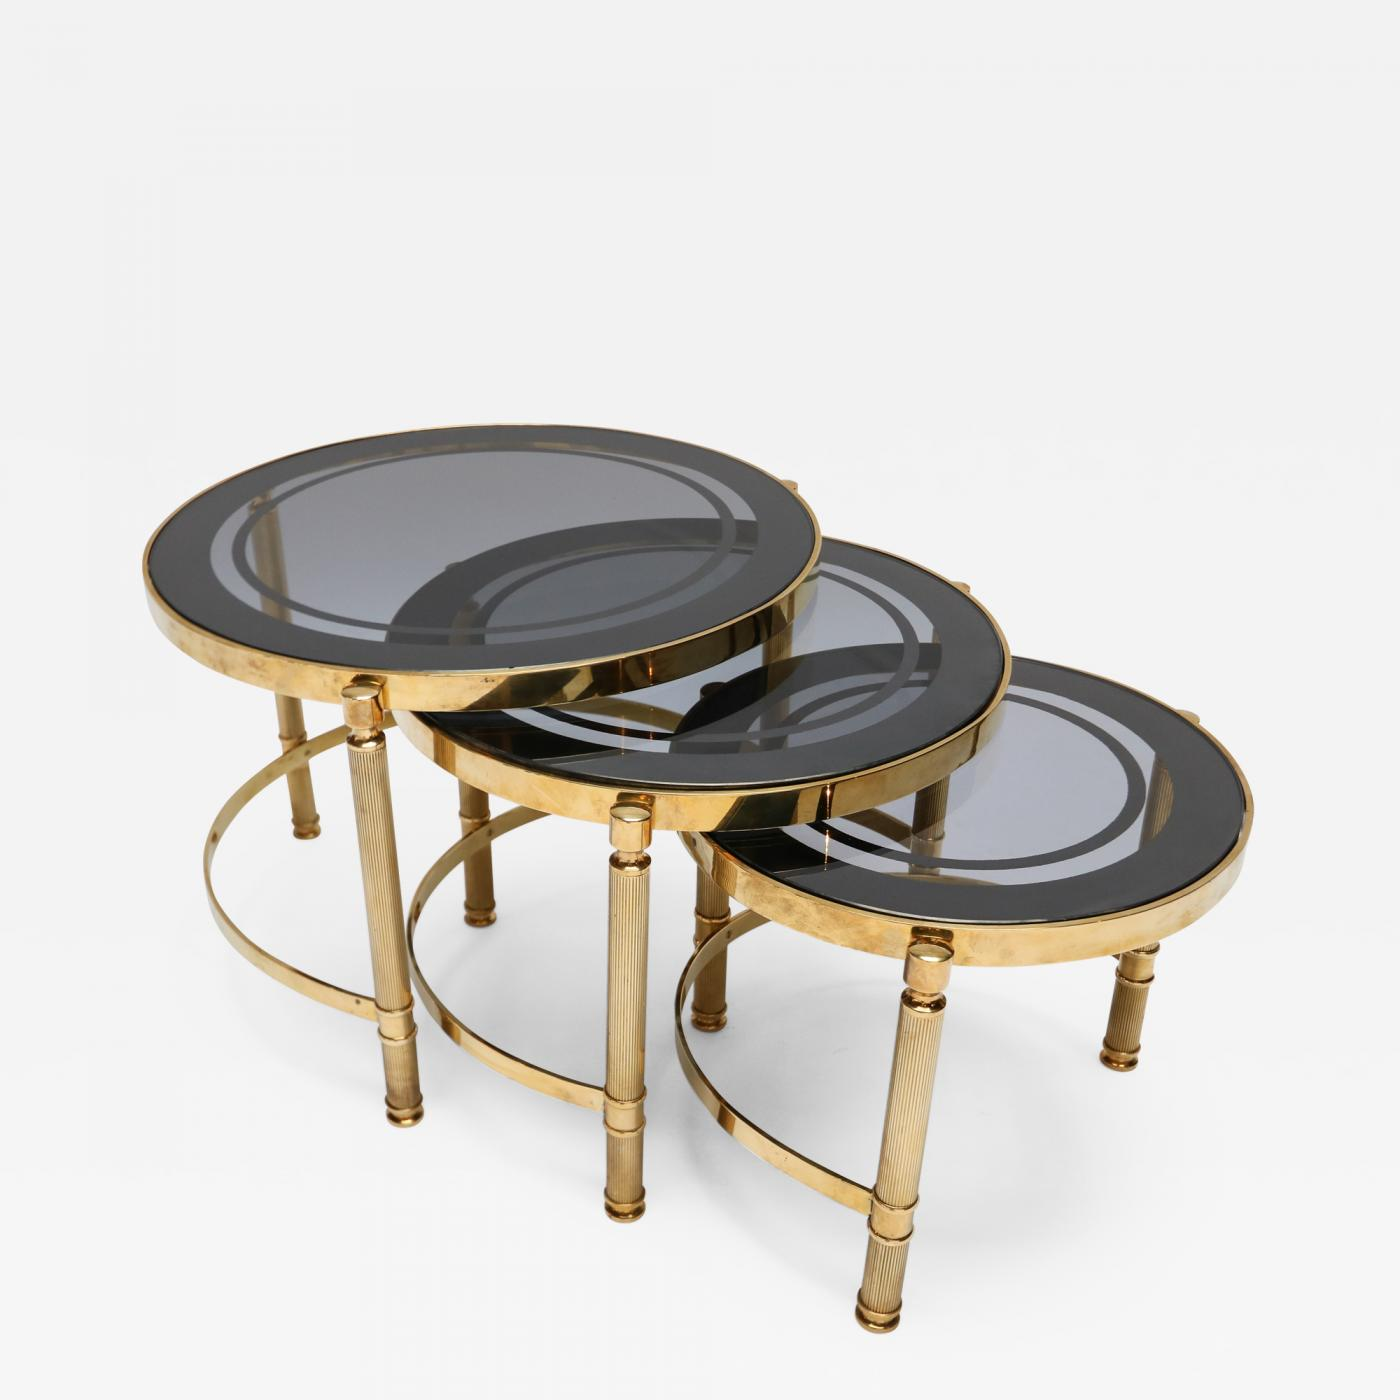 Glass Nesting Tables Set Of Three Brass Nesting Tables With Smoked Glass Tops